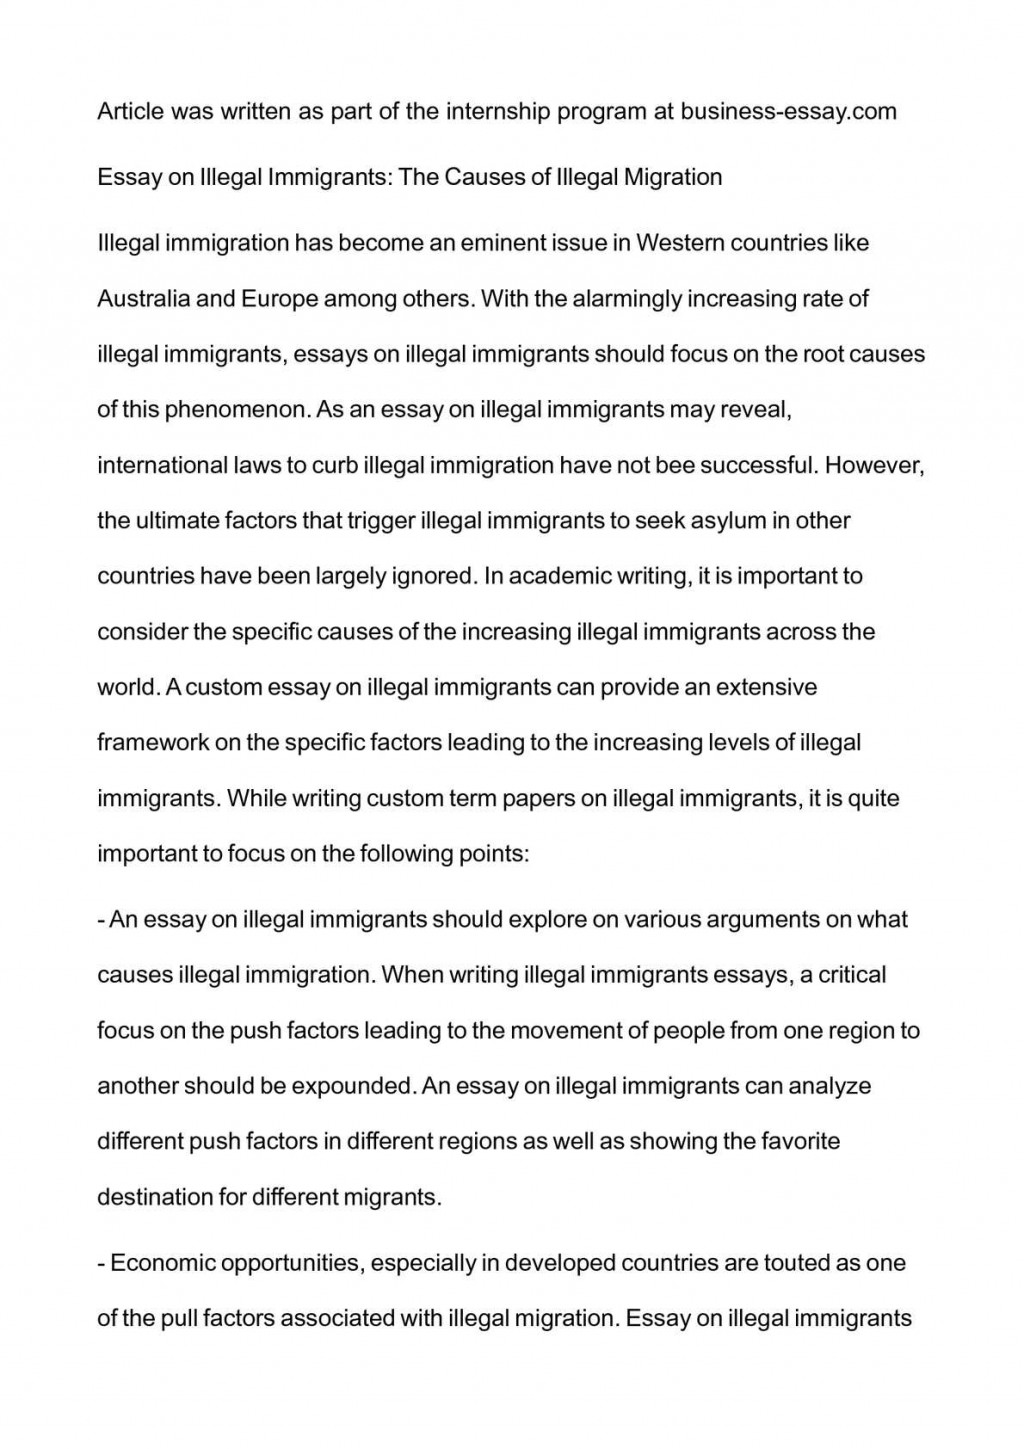 002 Essay Example Argumentative On Immigration Illegal P Against Thesis Pro Outline Wonderful Laws Topics Large